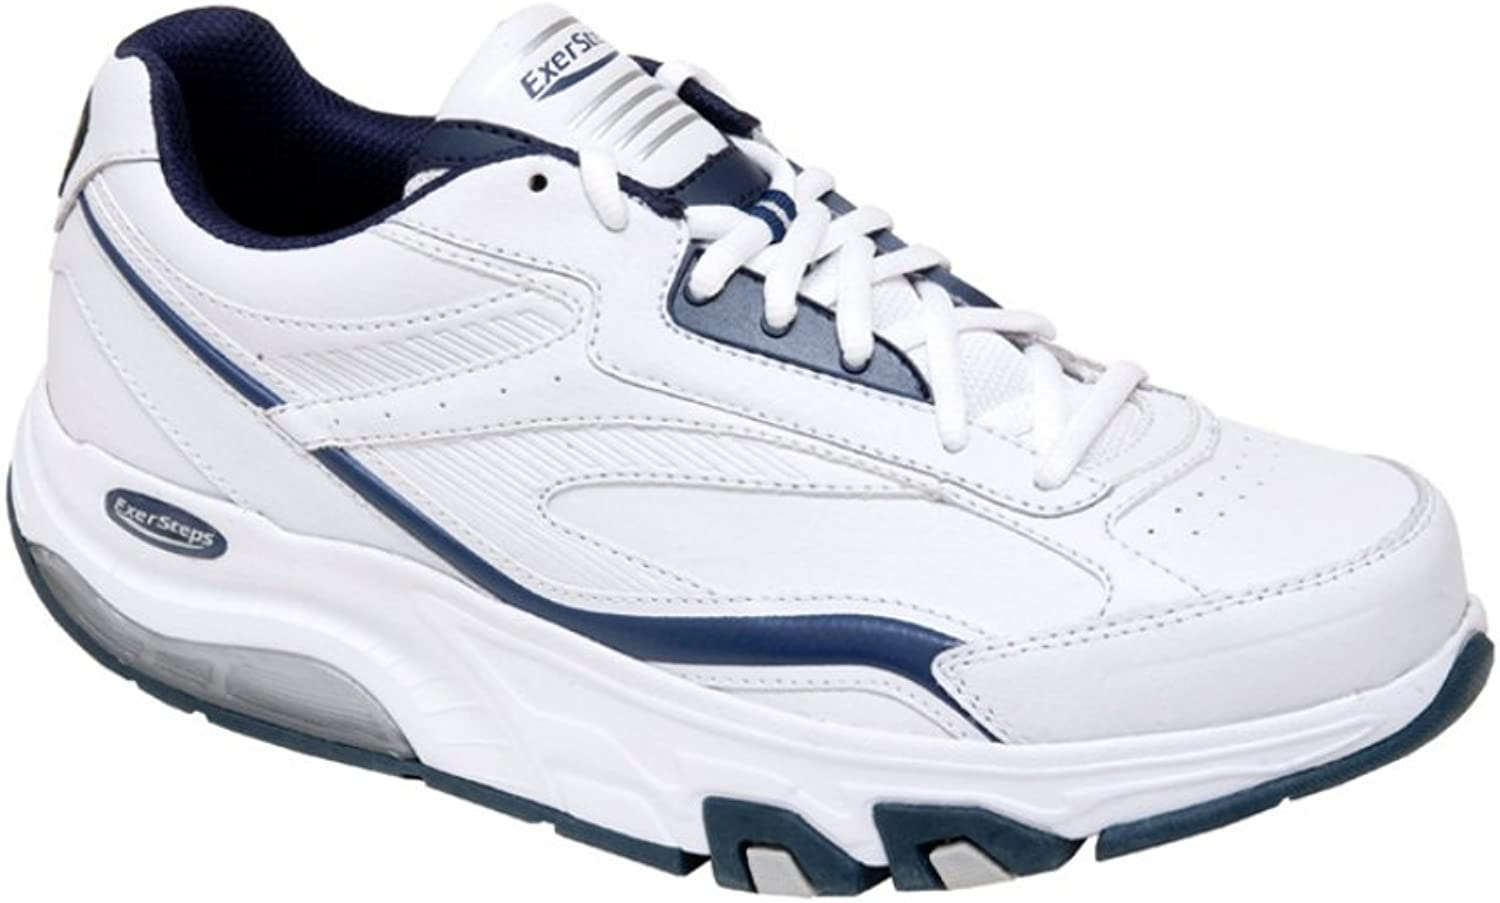 Exersteps Men's Whirlwind White Sneakers